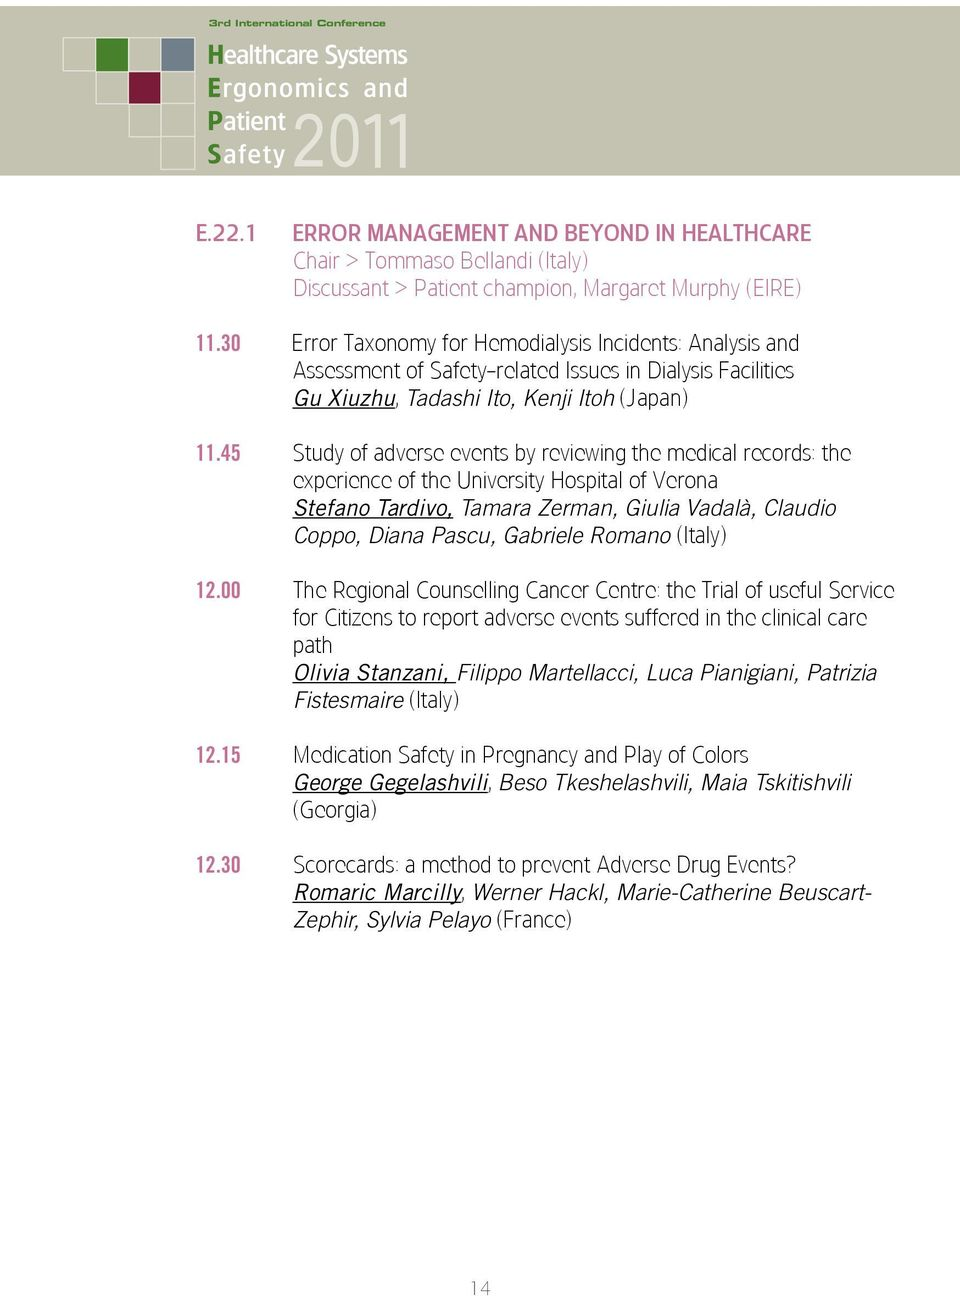 45 Study of adverse events by reviewing the medical records: the experience of the University Hospital of Verona Stefano Tardivo, Tamara Zerman, Giulia Vadalà, Claudio Coppo, Diana Pascu, Gabriele